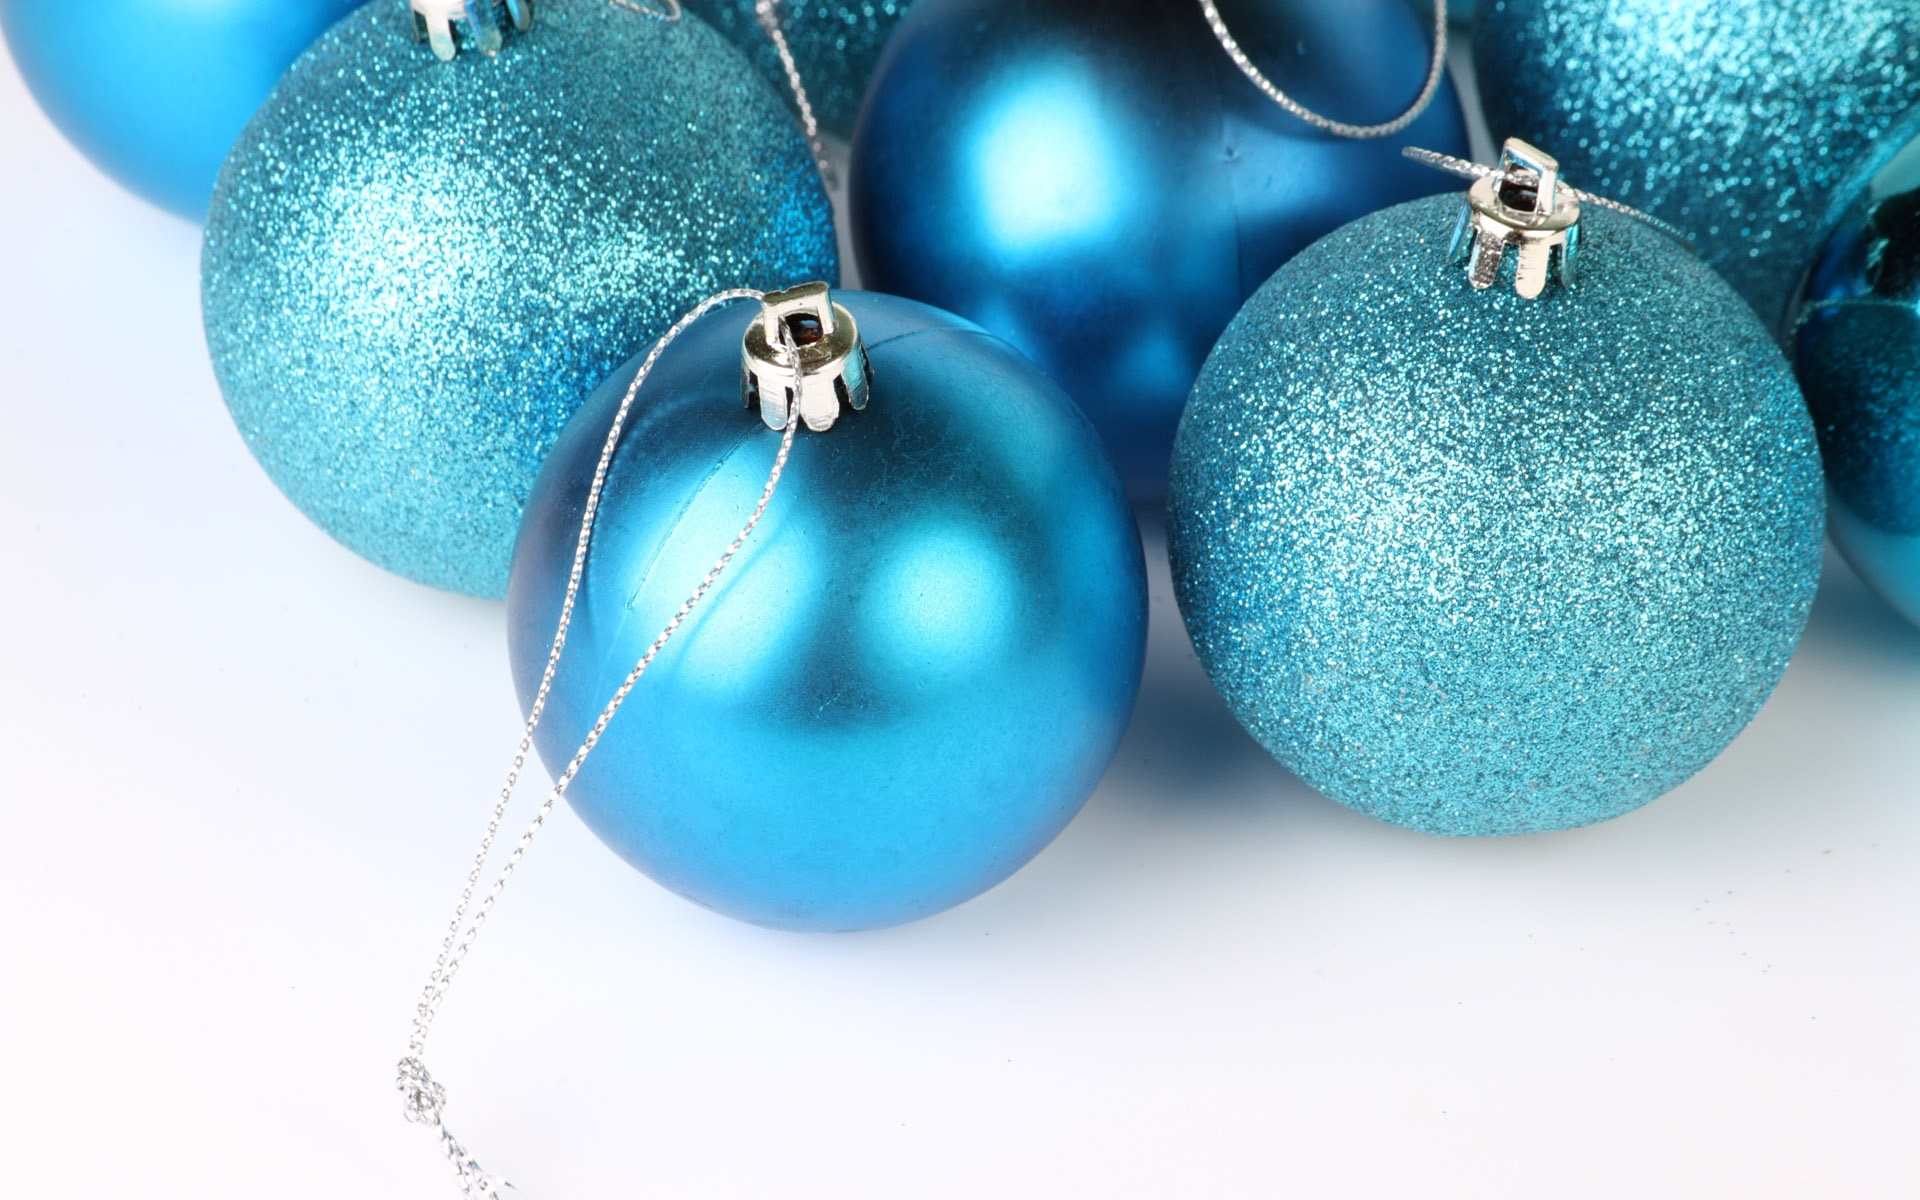 Blue christmas ornaments wallpapers